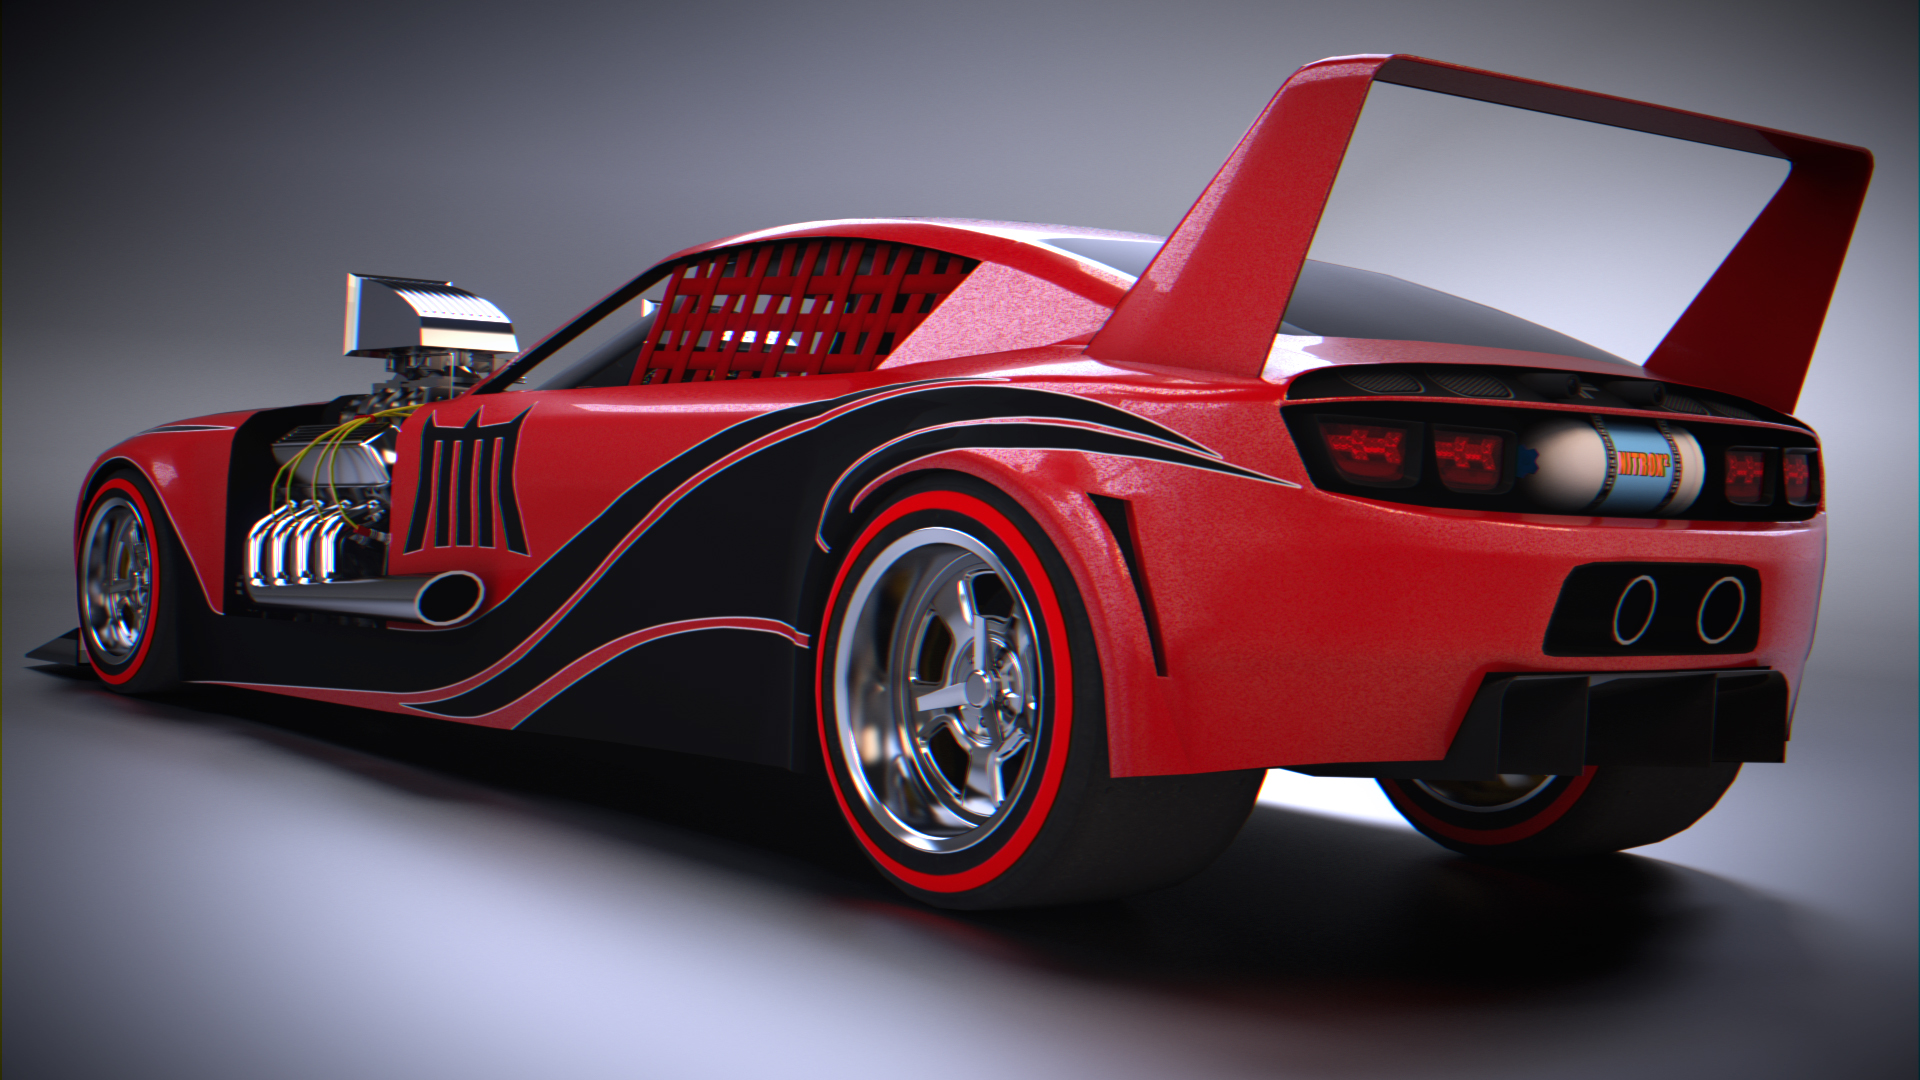 Image Result For The Best Super Car Wallpaper